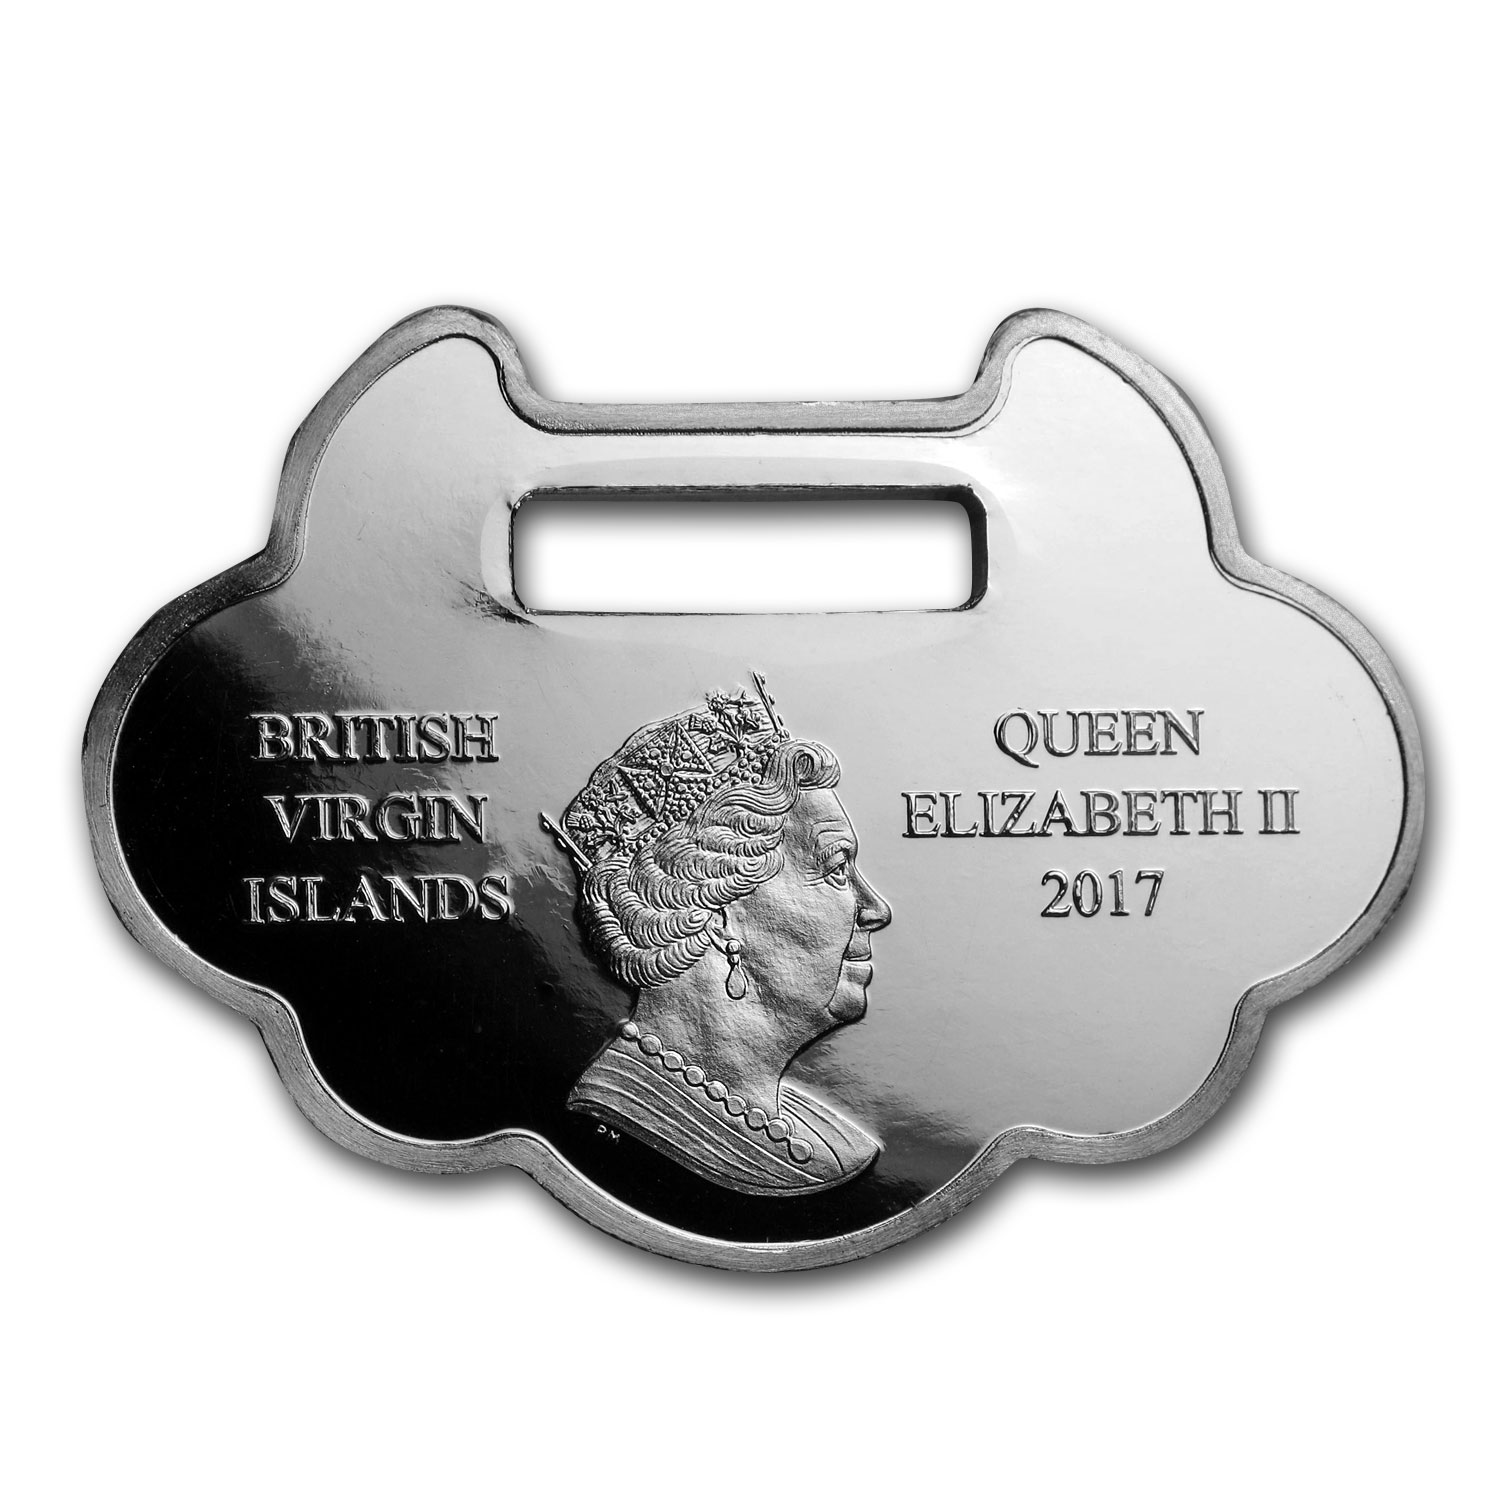 2017 British Virgin Islands 1 oz Silver Year of the Rooster Proof